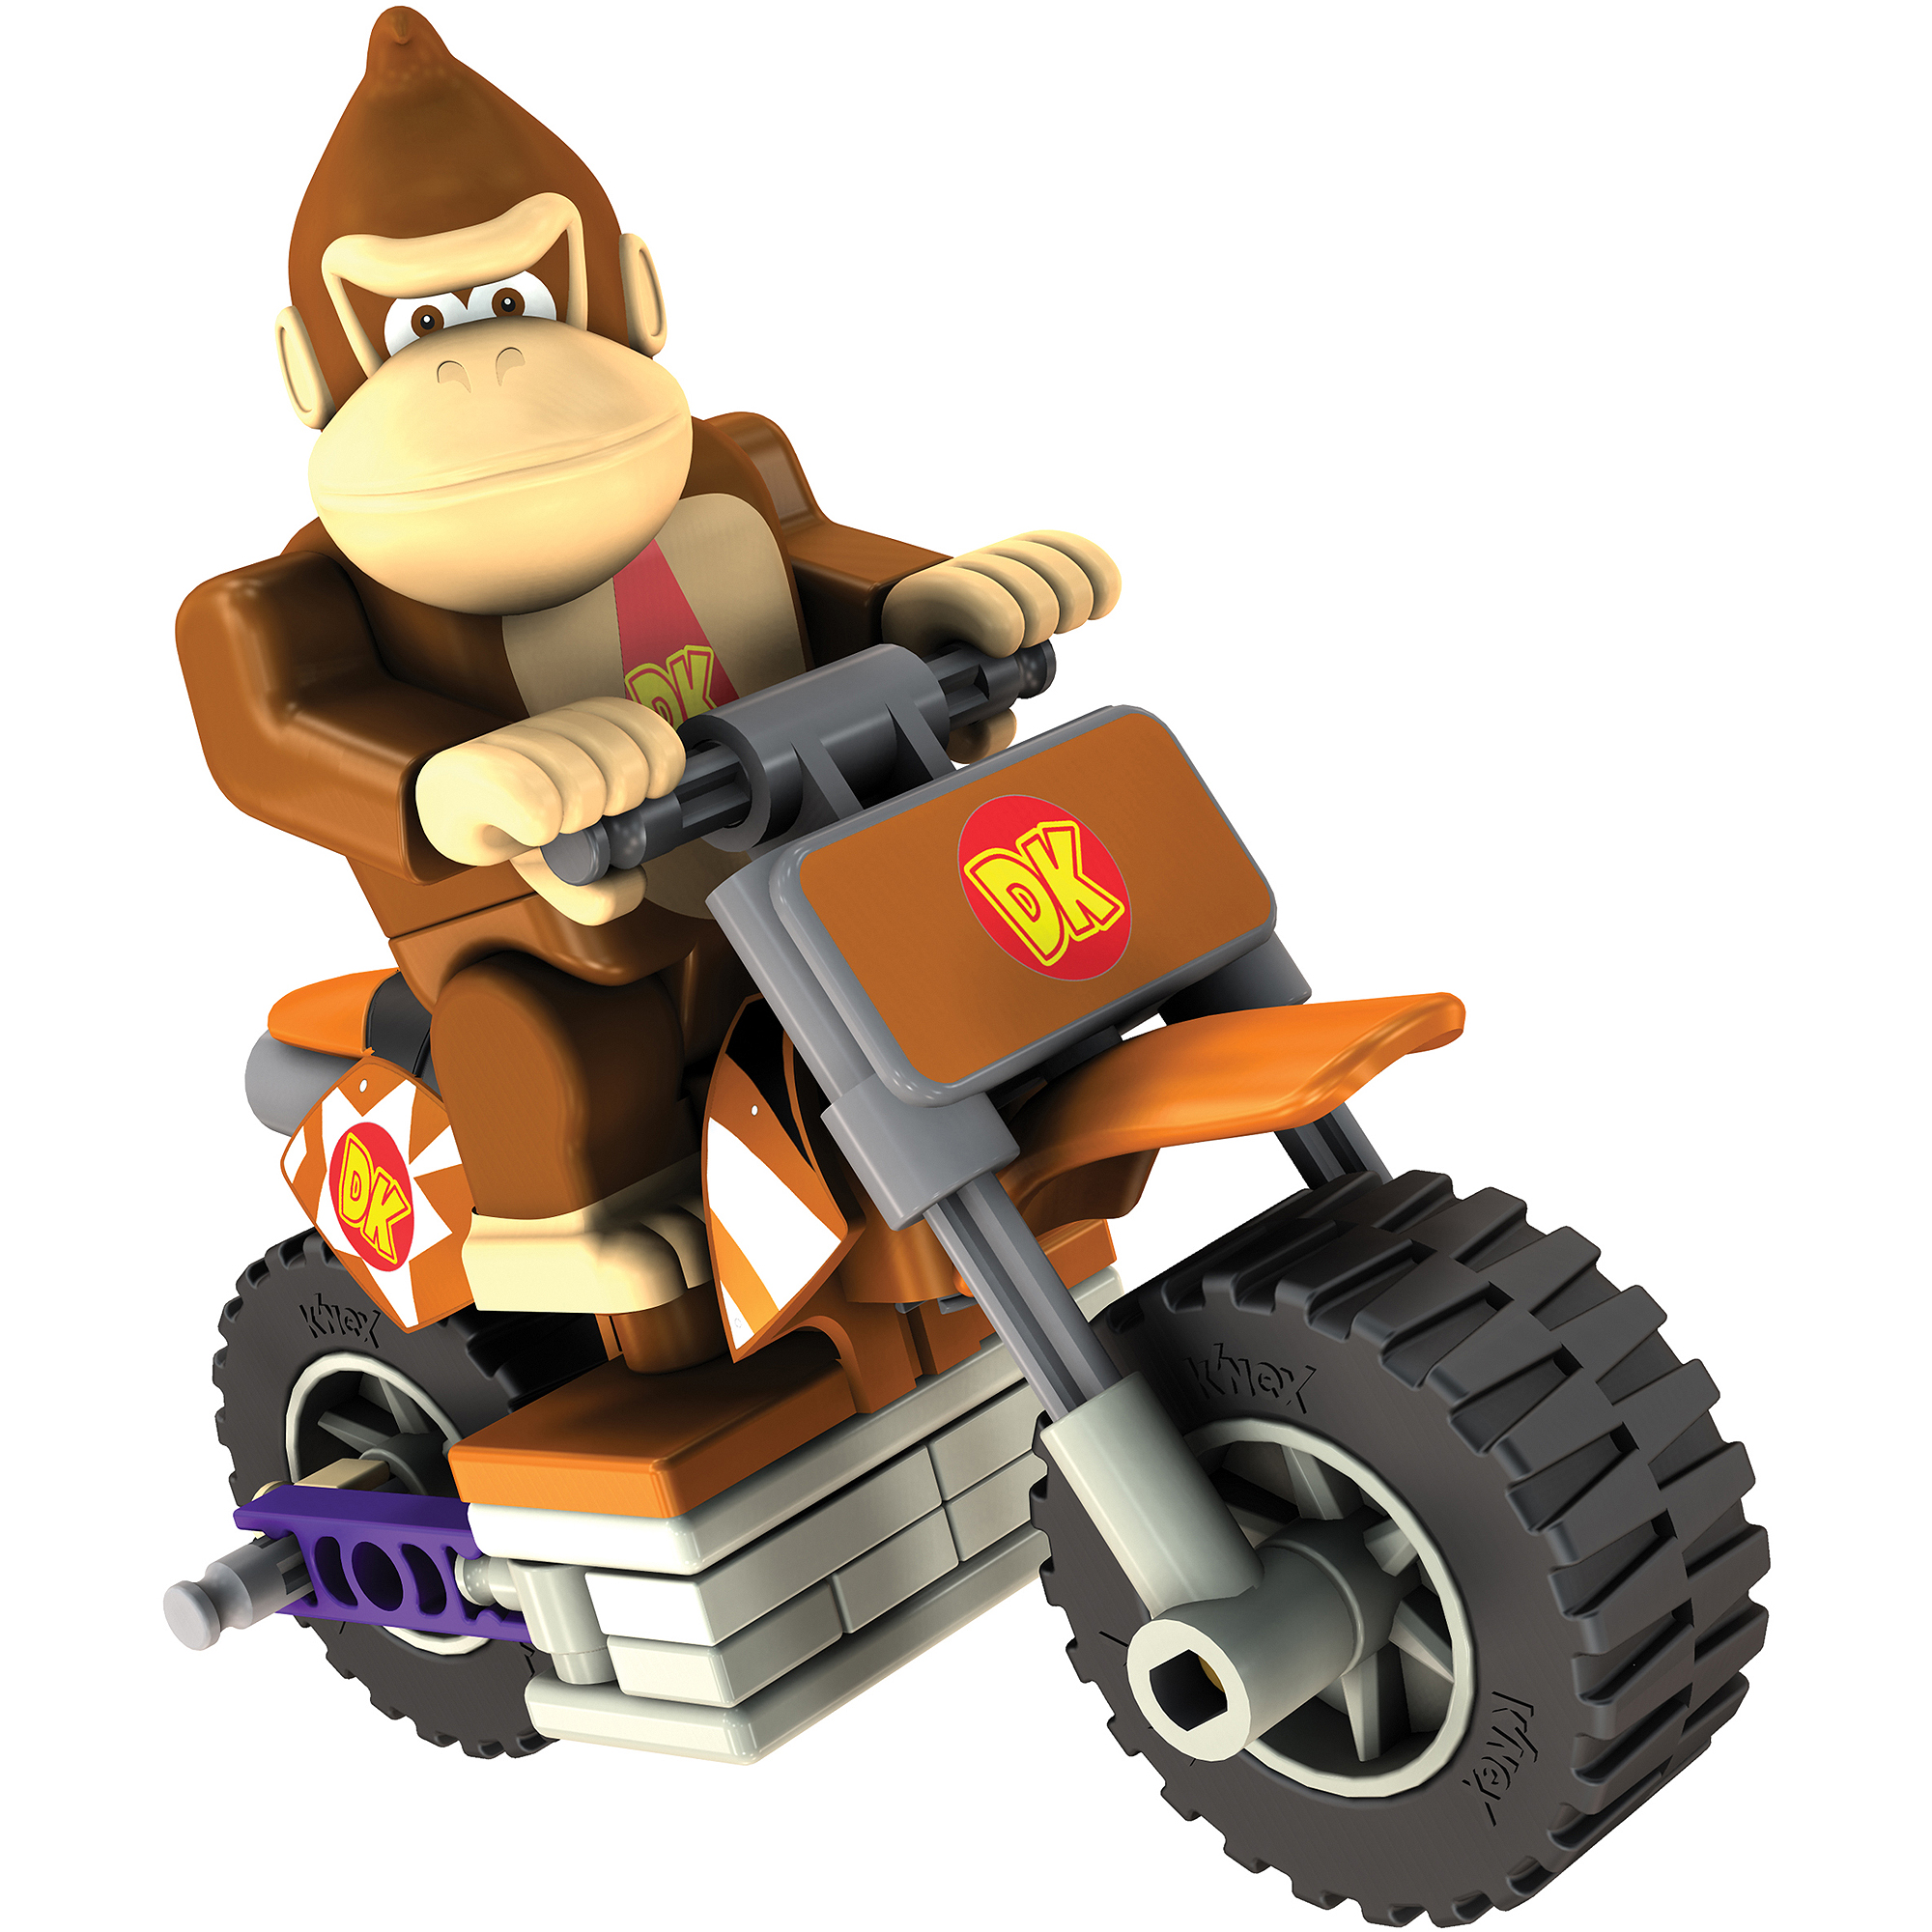 K'NEX Mario Kart Wii Building Set: Donkey Kong with Standard Bike